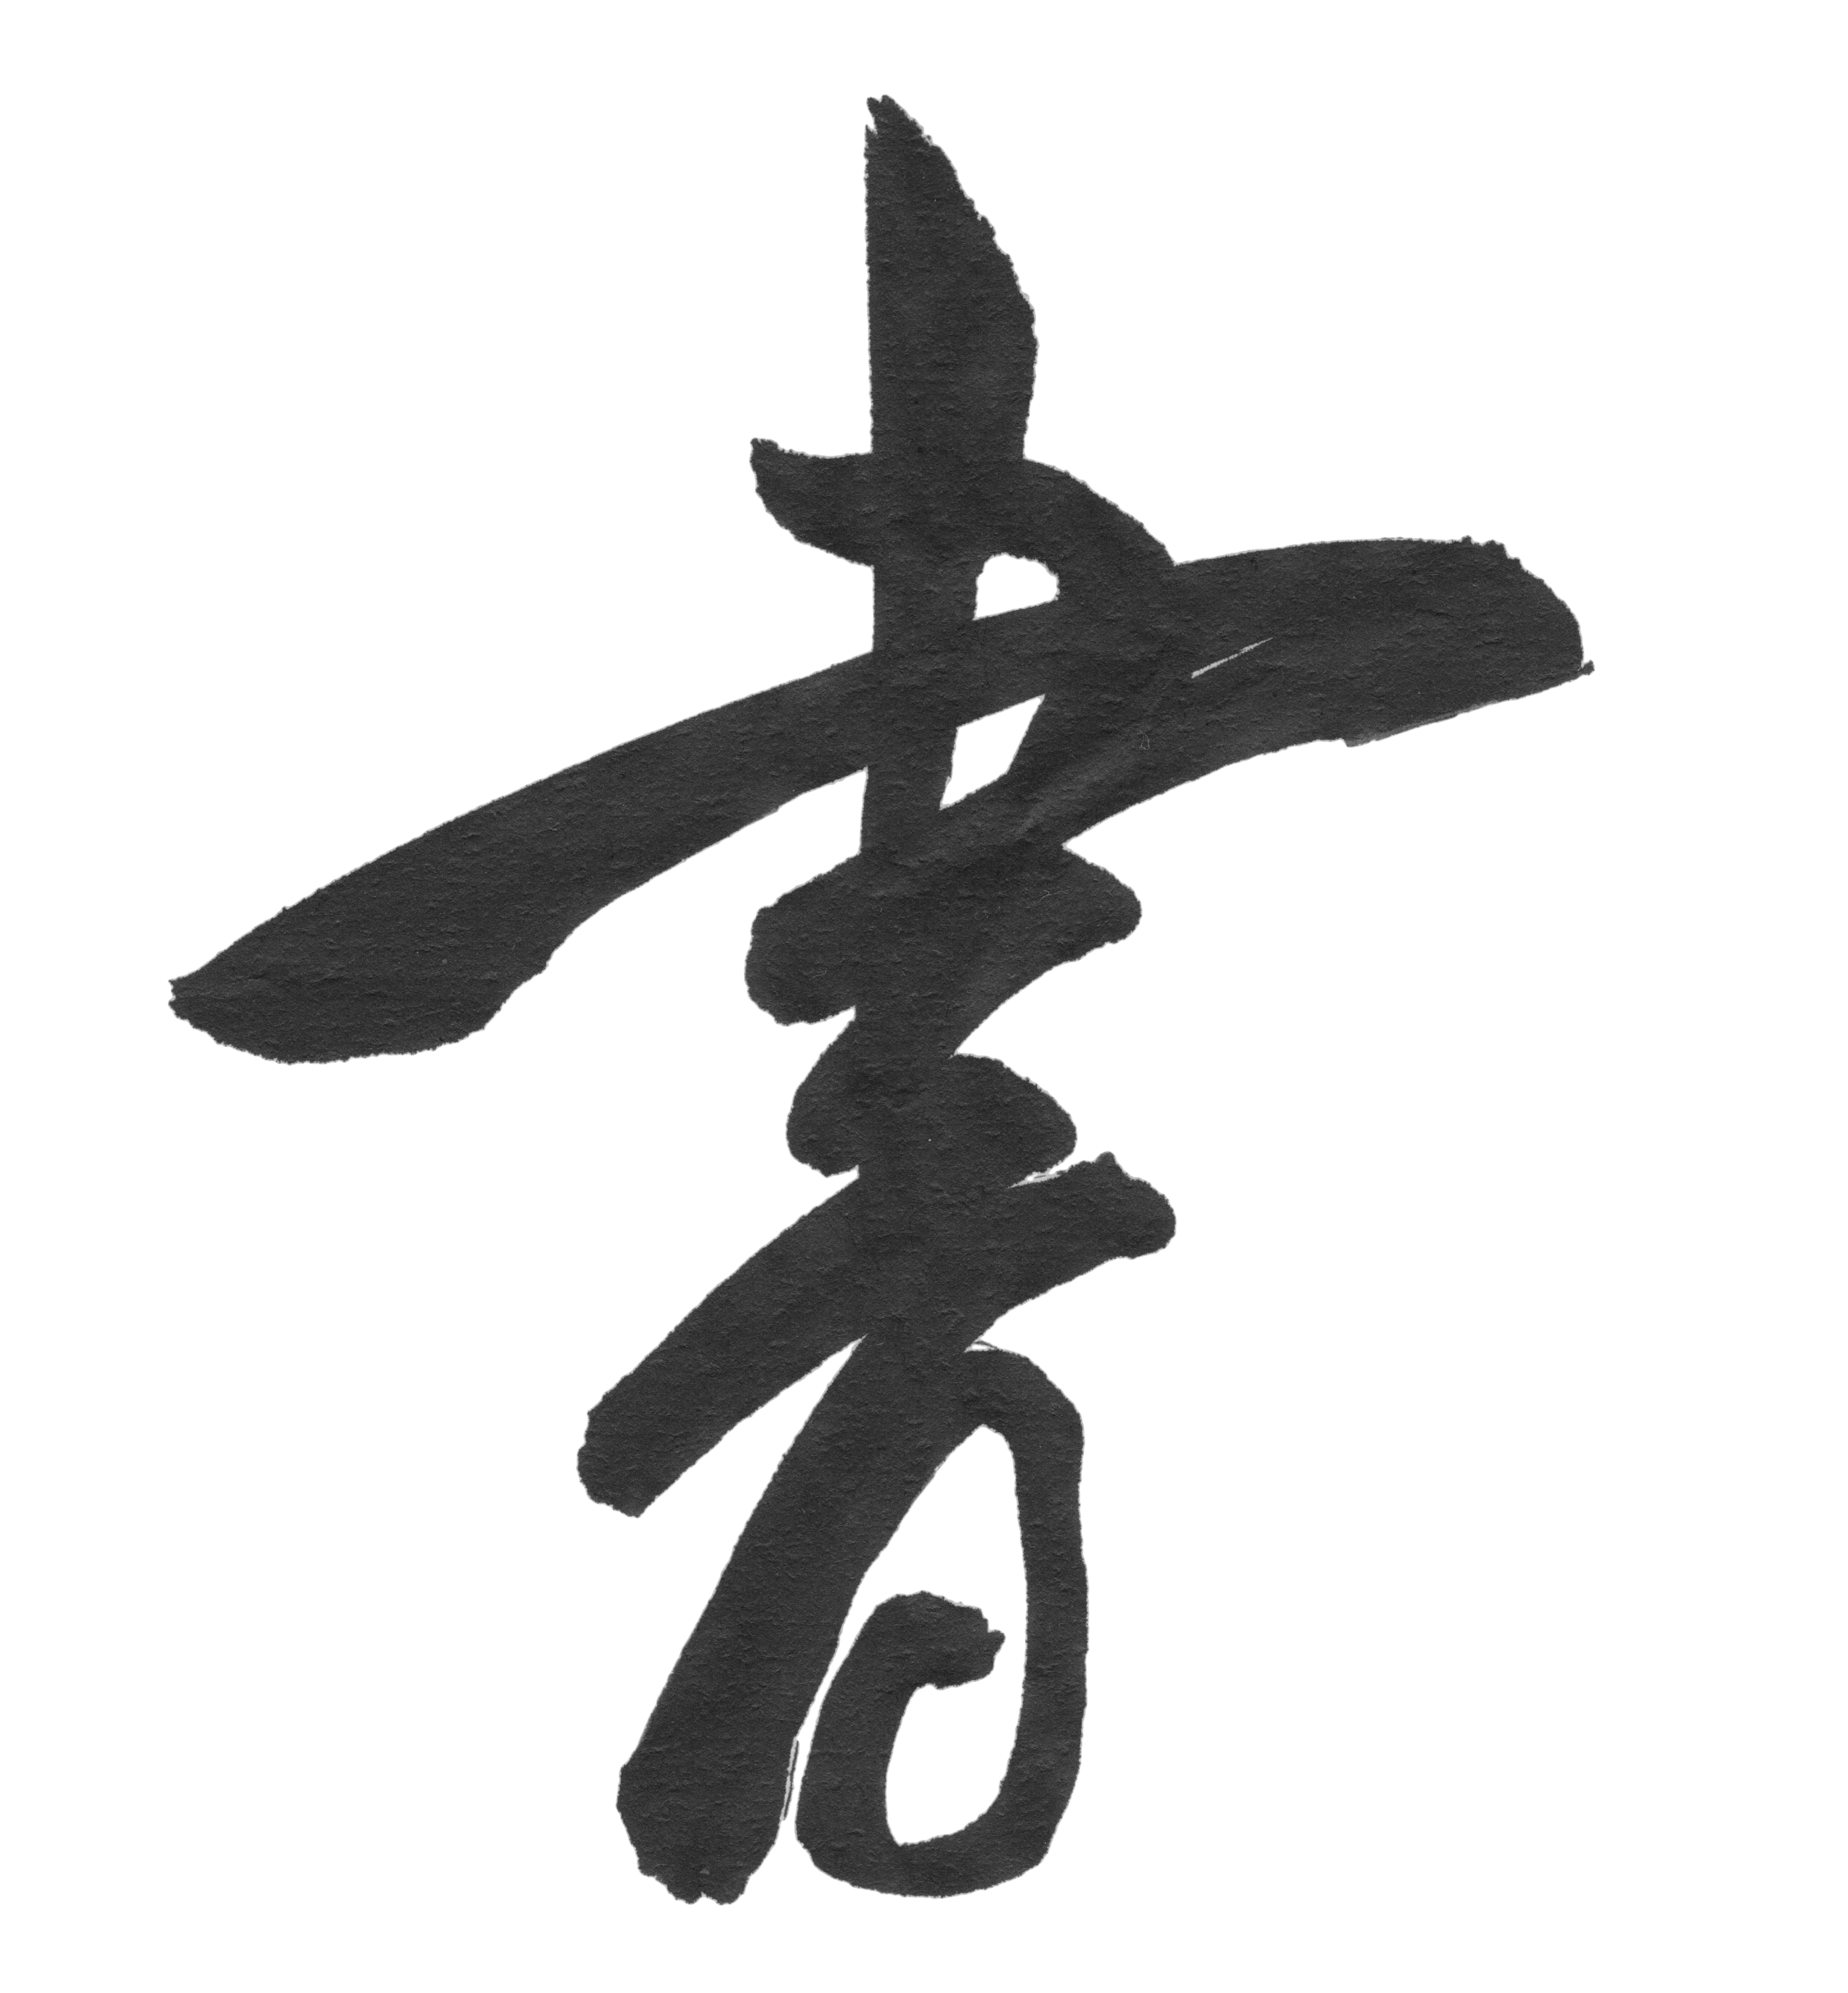 How to write your name in japanese gohitsu shodo studio biocorpaavc